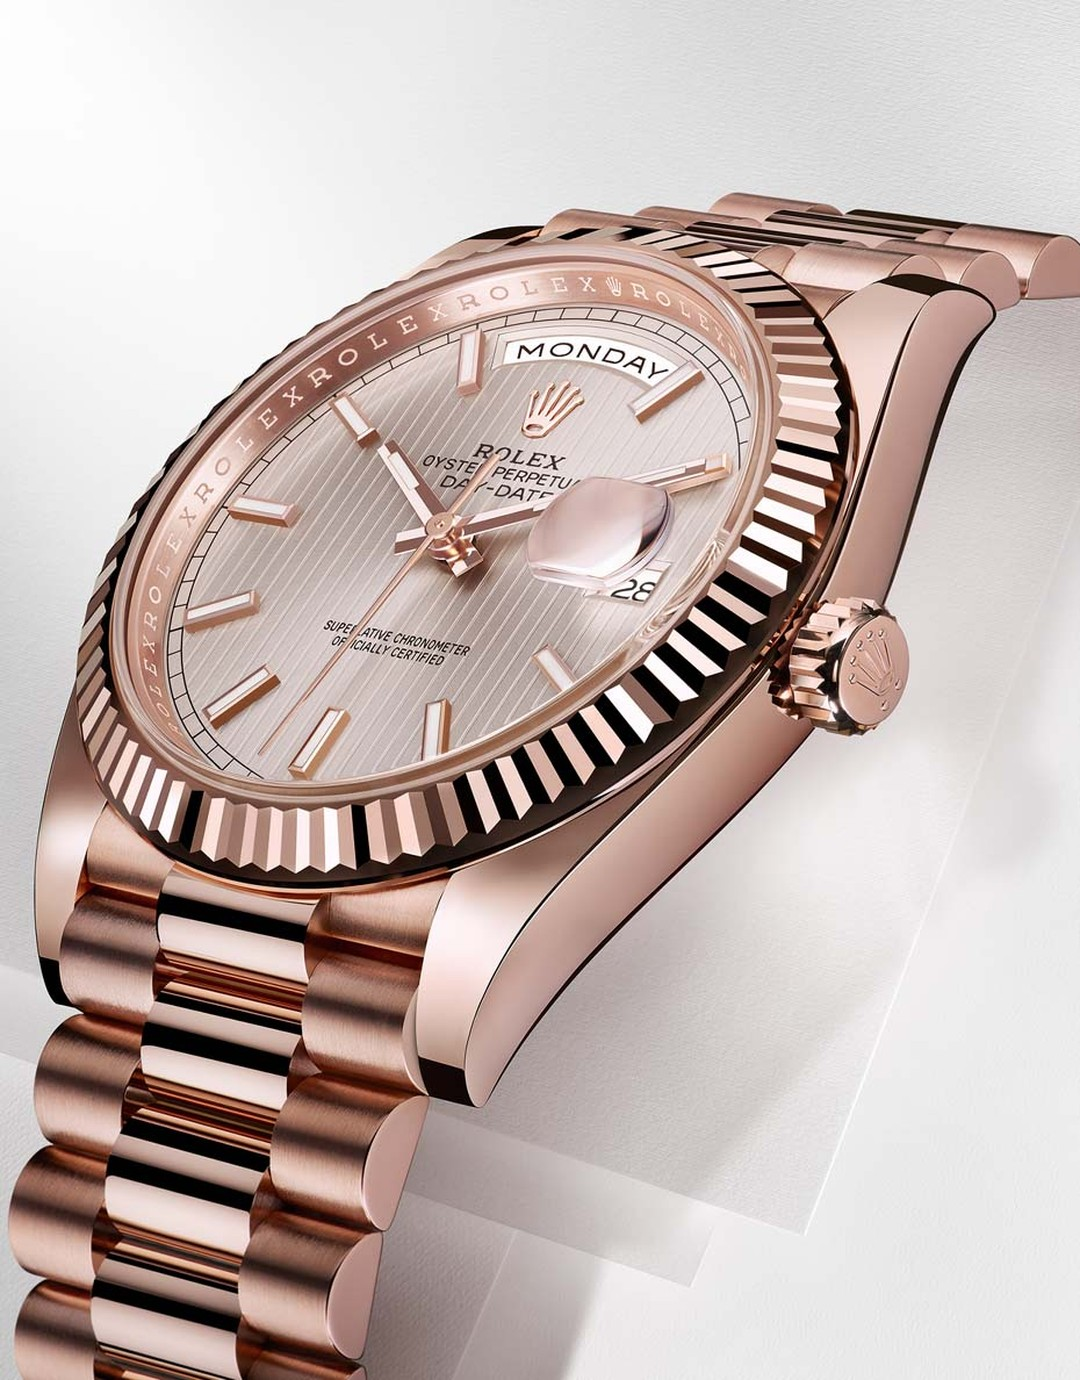 Rolex Oyster Perpetual Day-Date 40mm men's watch with an Everose gold dial with sunburst striped motifs on the dial, a three-piece solid gold link President bracelet and new 3255 Manufacture Rolex calibre.